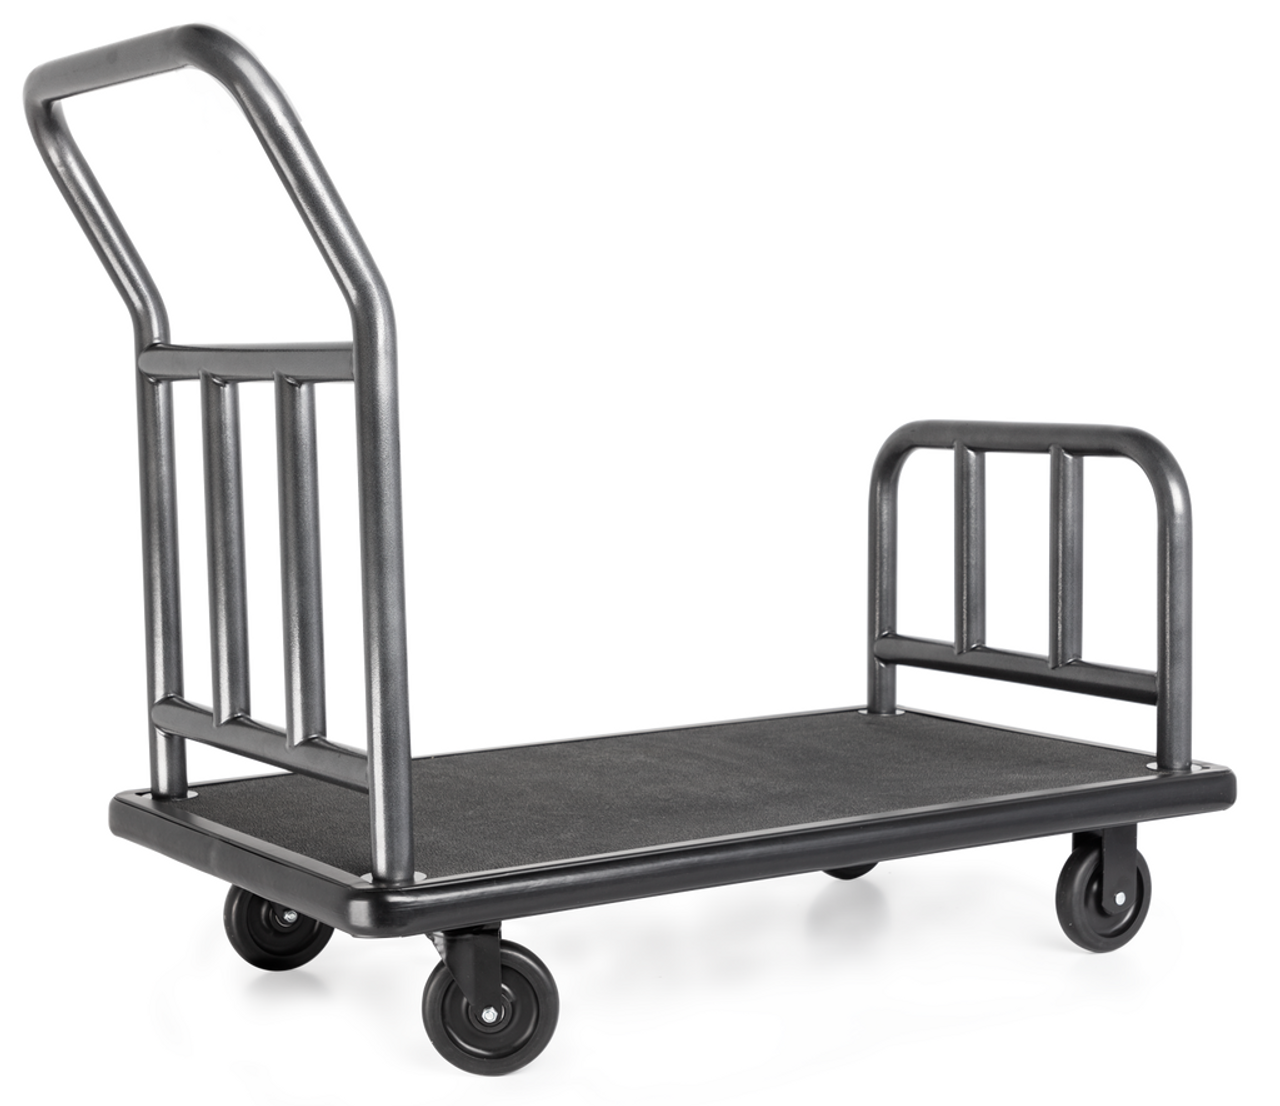 HOSPITALITY 1 SOURCE HOSPITALITY 1 SOURCE or UTILITY CART - All Styles and Wheel Sizes